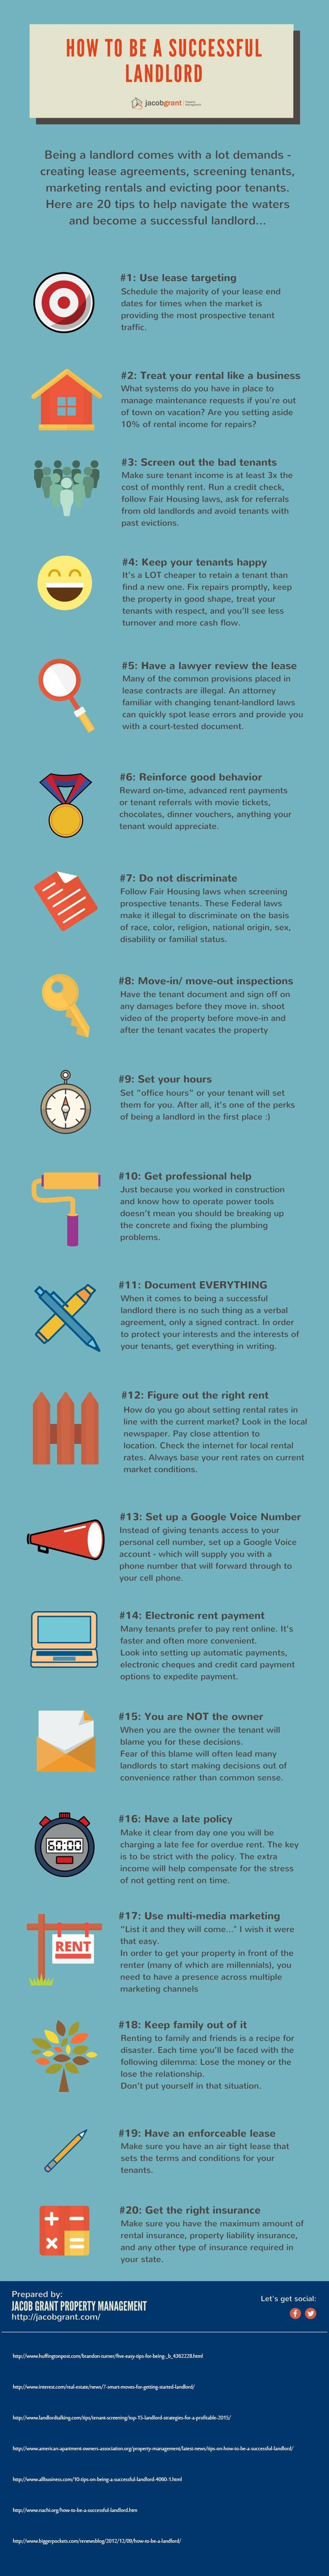 20 tips to be a successful landlord